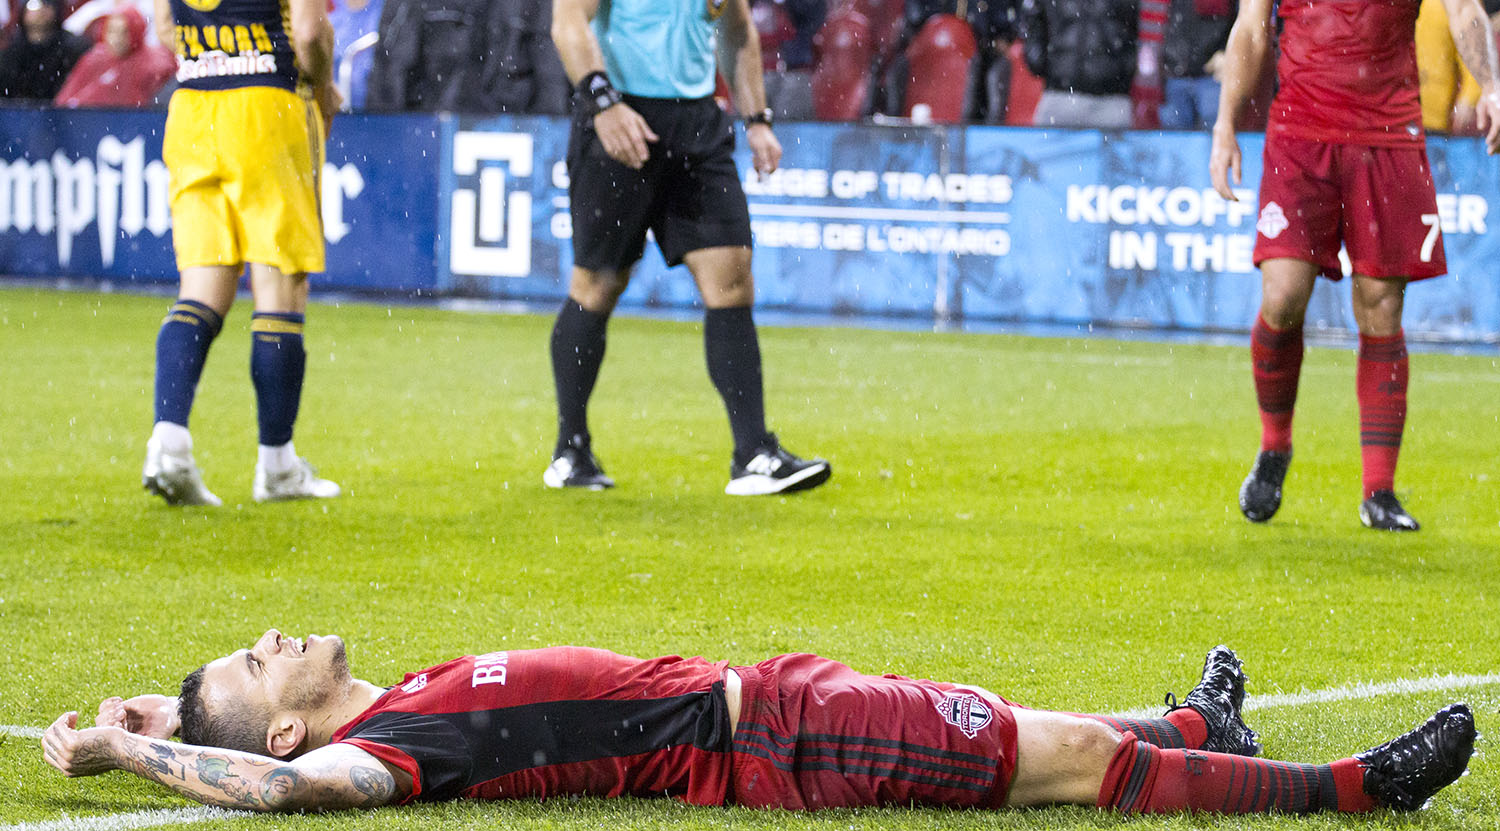 Sebastian Giovinco goes to ground and has a relax as the pouring rain comes down on him during a playoff match in 2017. Image by Dennis Marciniak of denMAR Media.